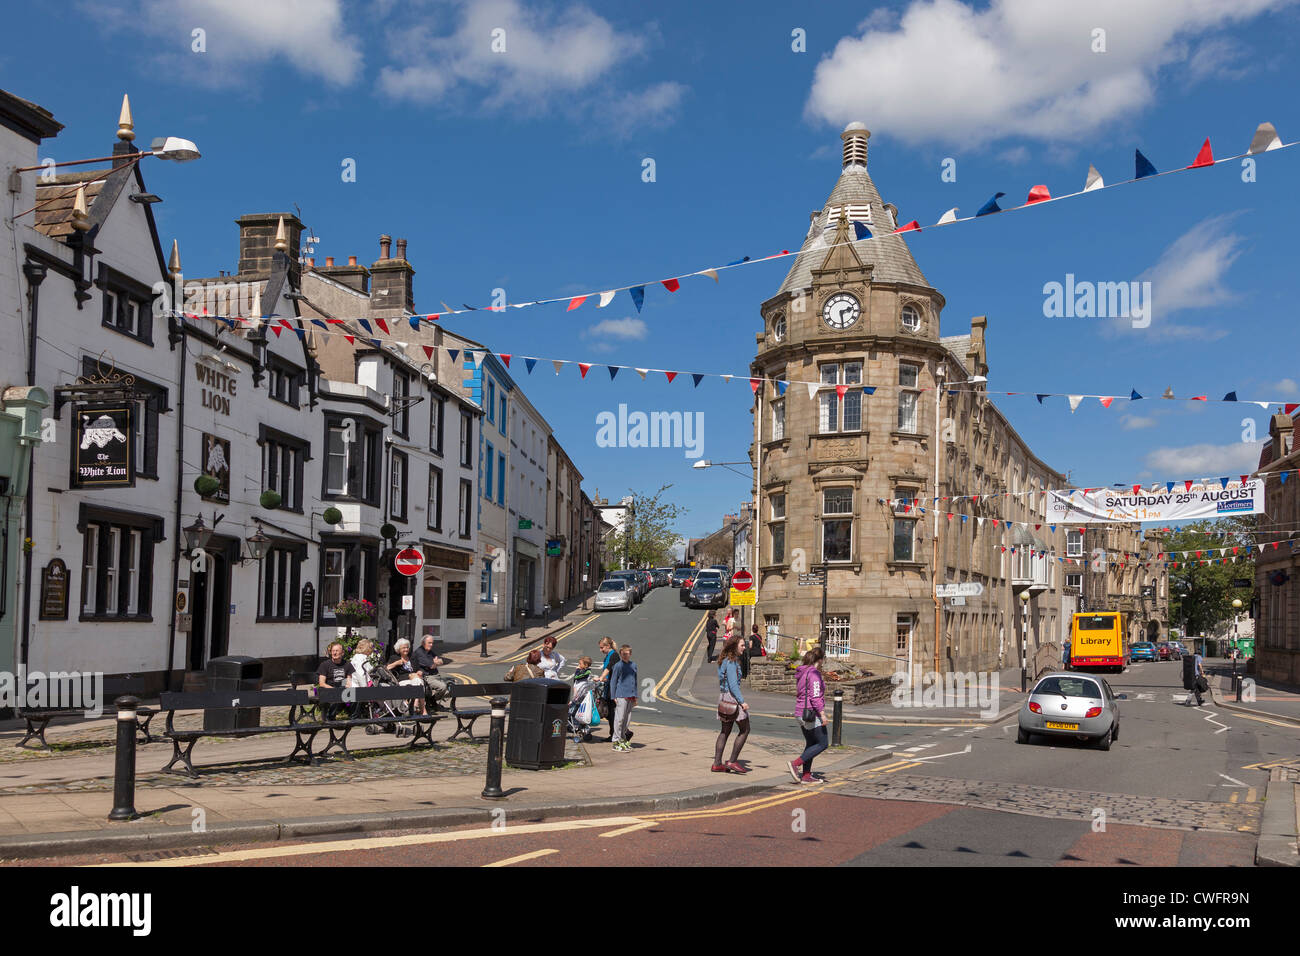 The centre of the town of Clitheroe in Lancashire Forest of Bowland. - Stock Image